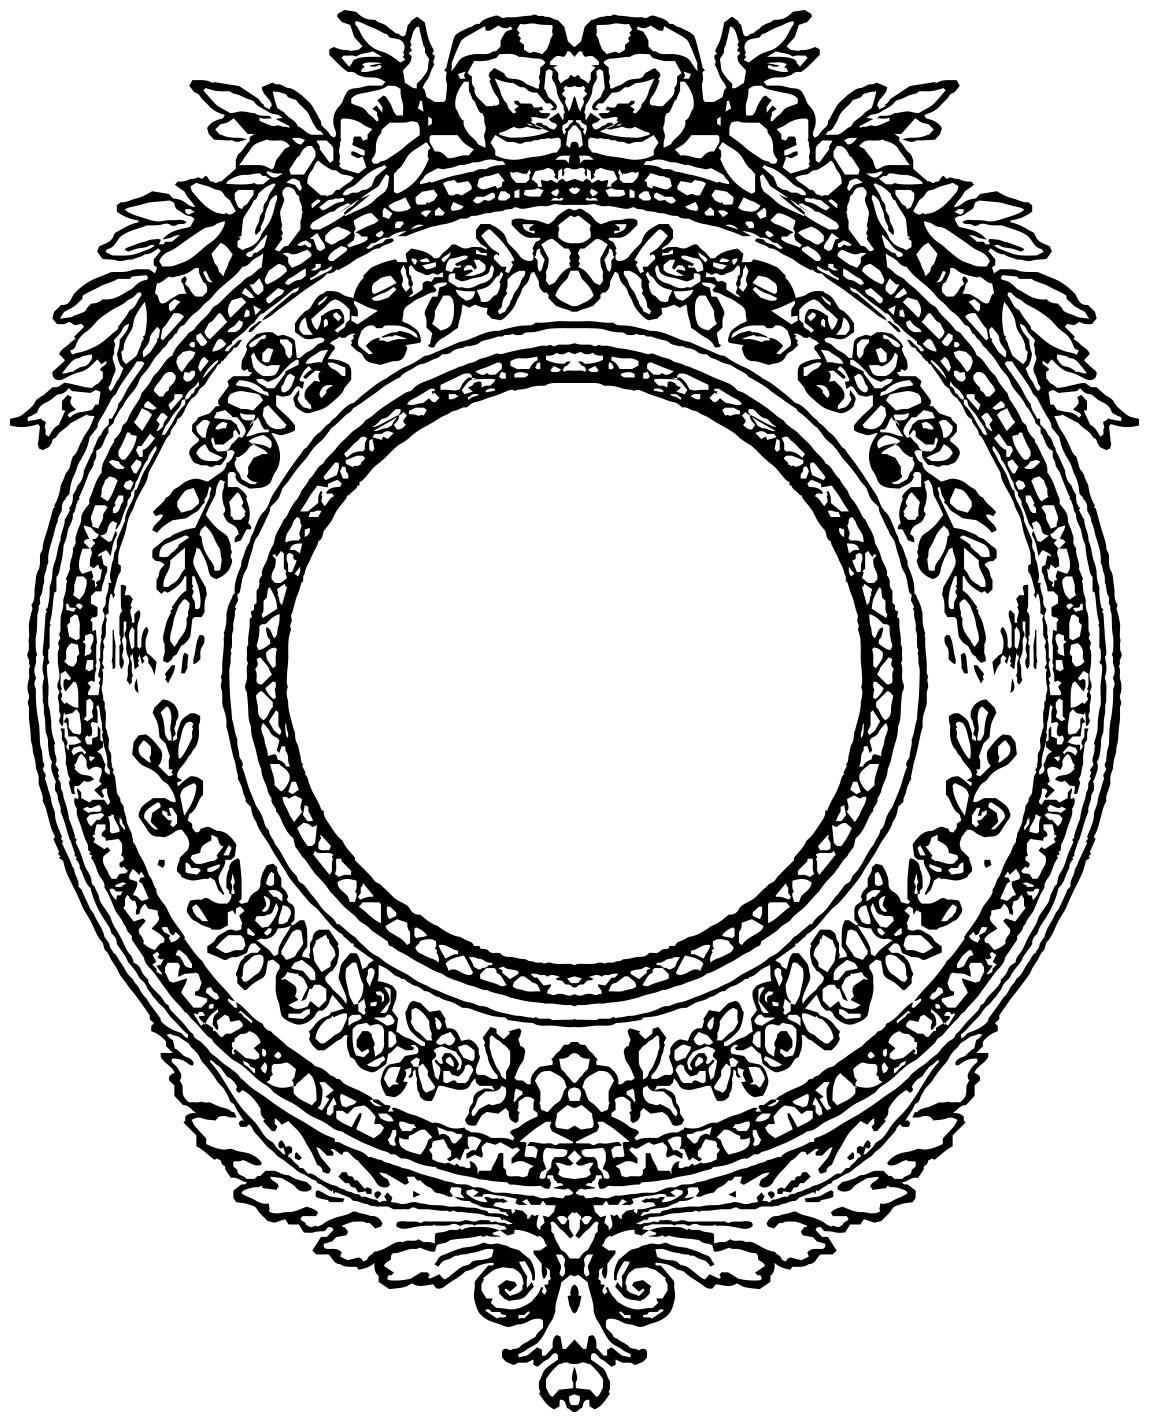 1149x1423 Vintage Round Frames Laurel Wreath Clipart Oh So Nifty Vintage